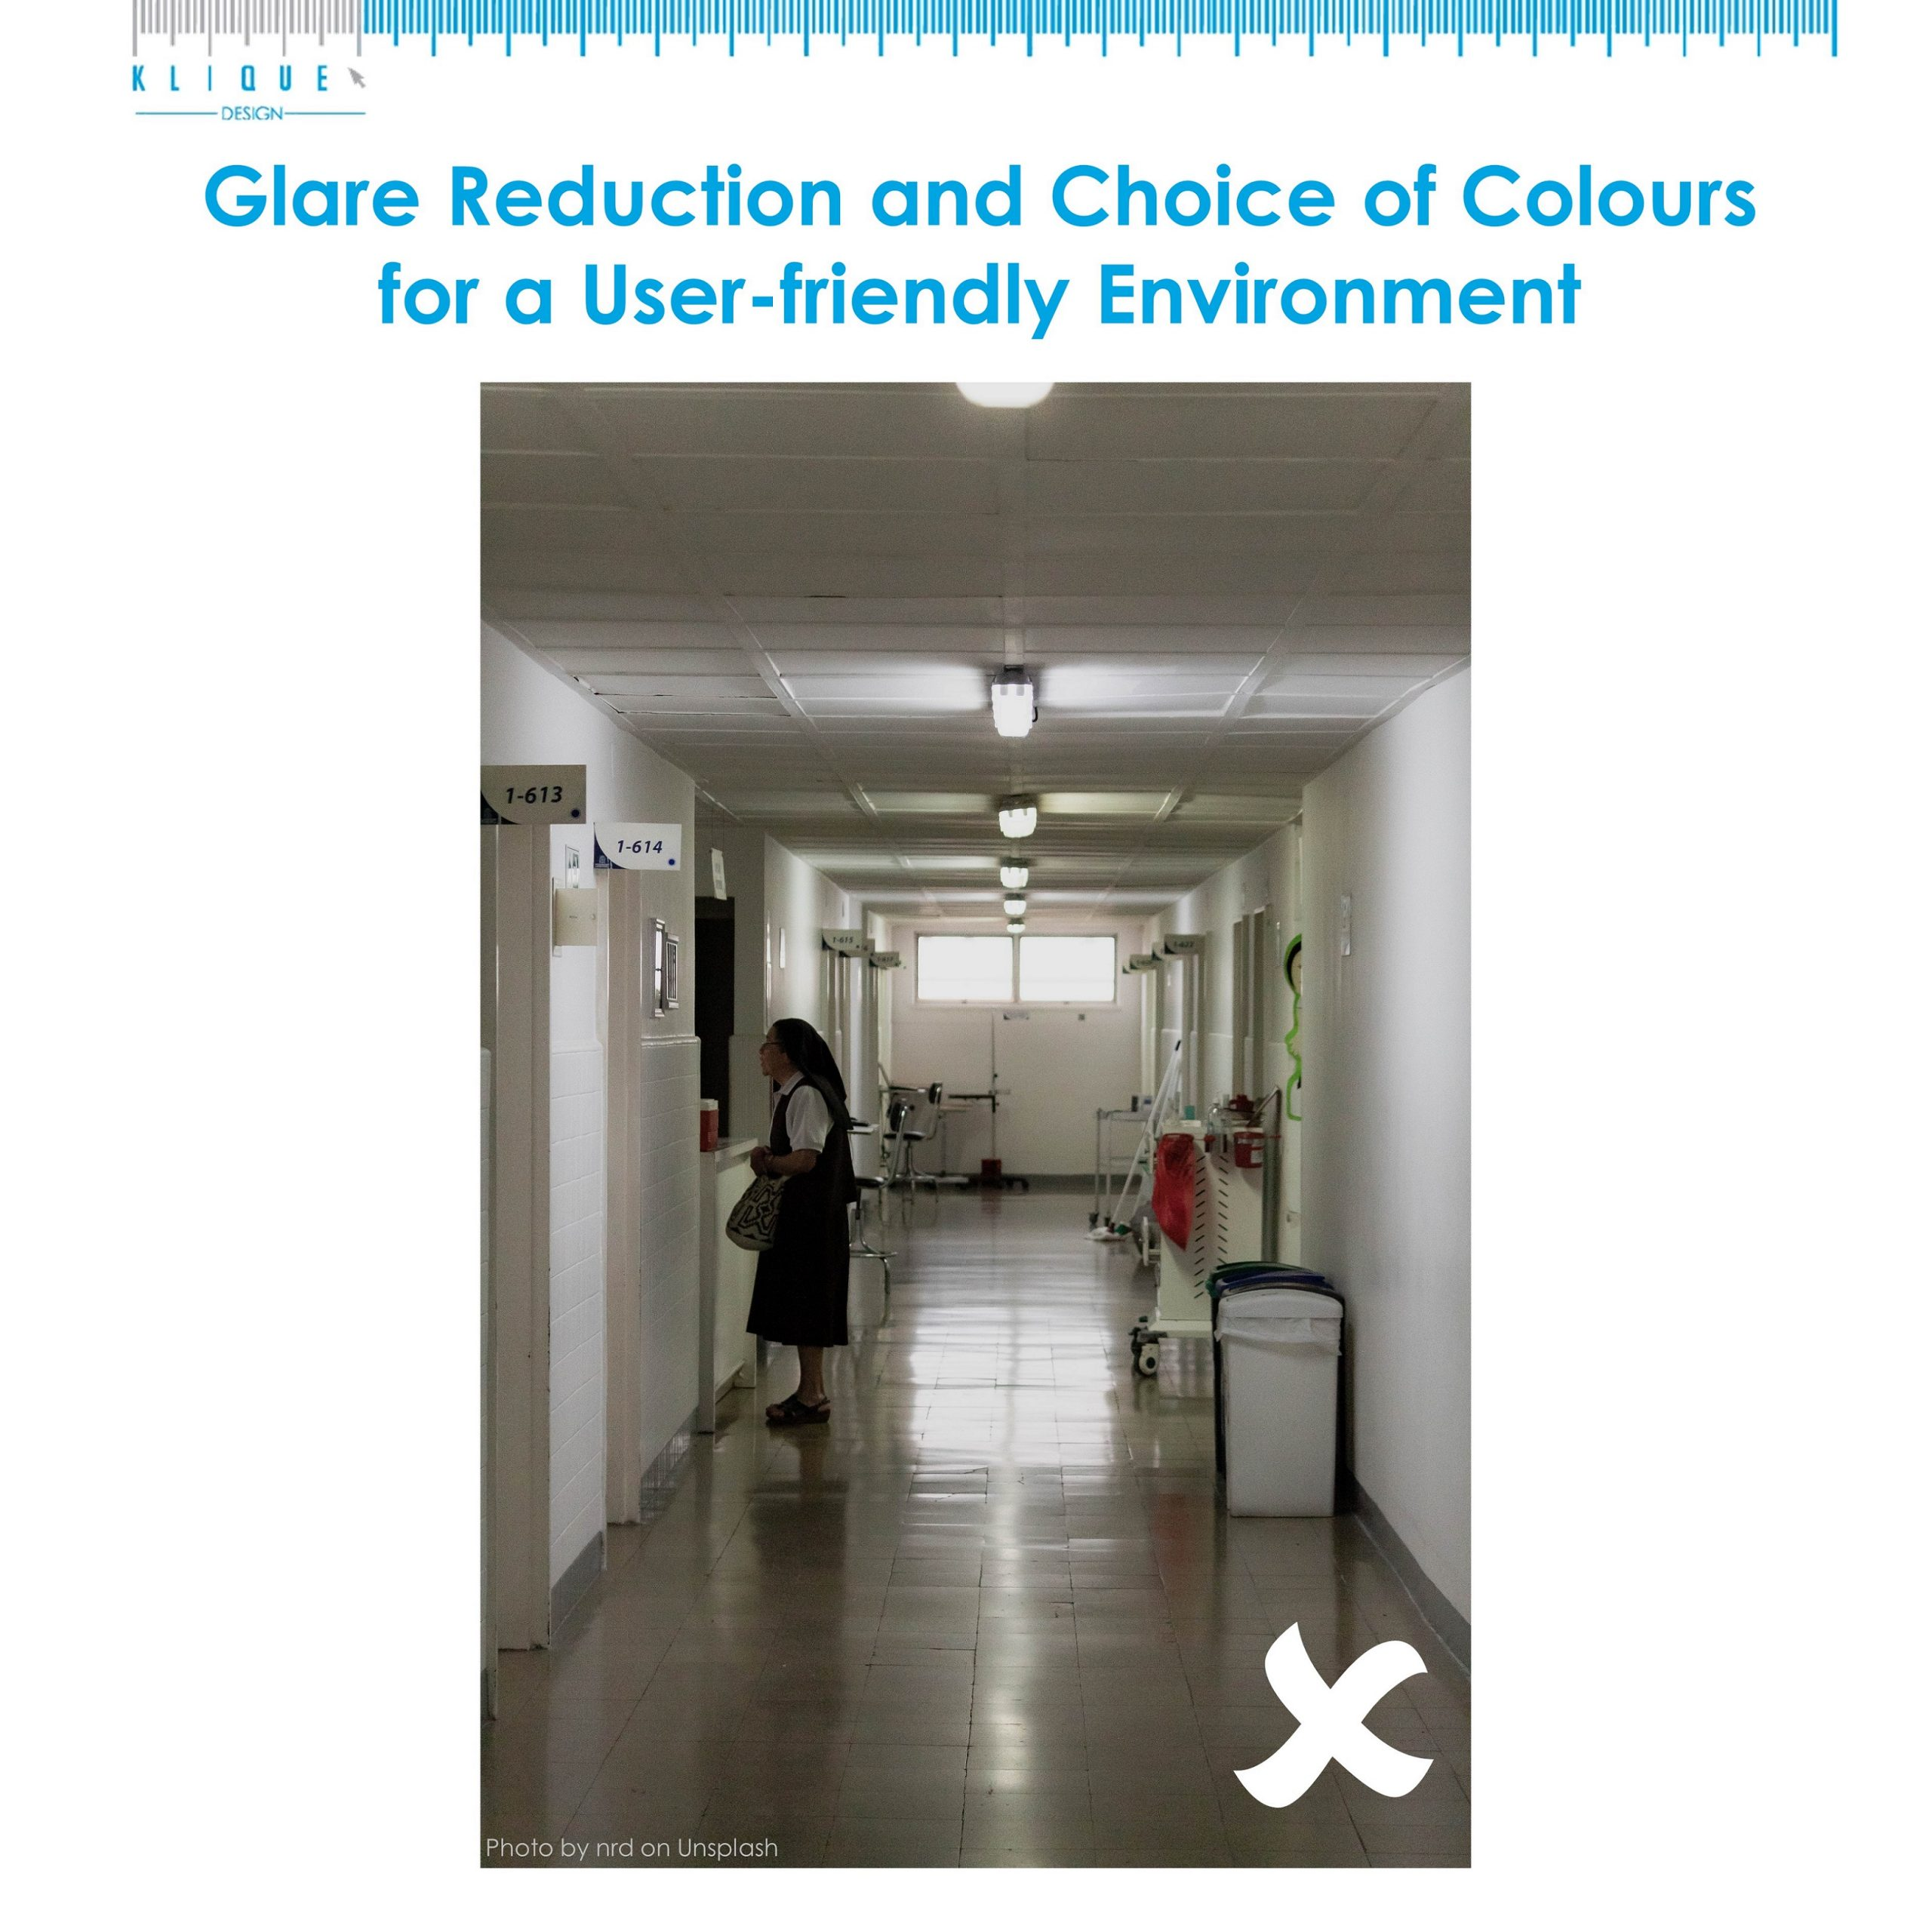 Glare Reduction and Choice of Colours for a User-friendly Environment